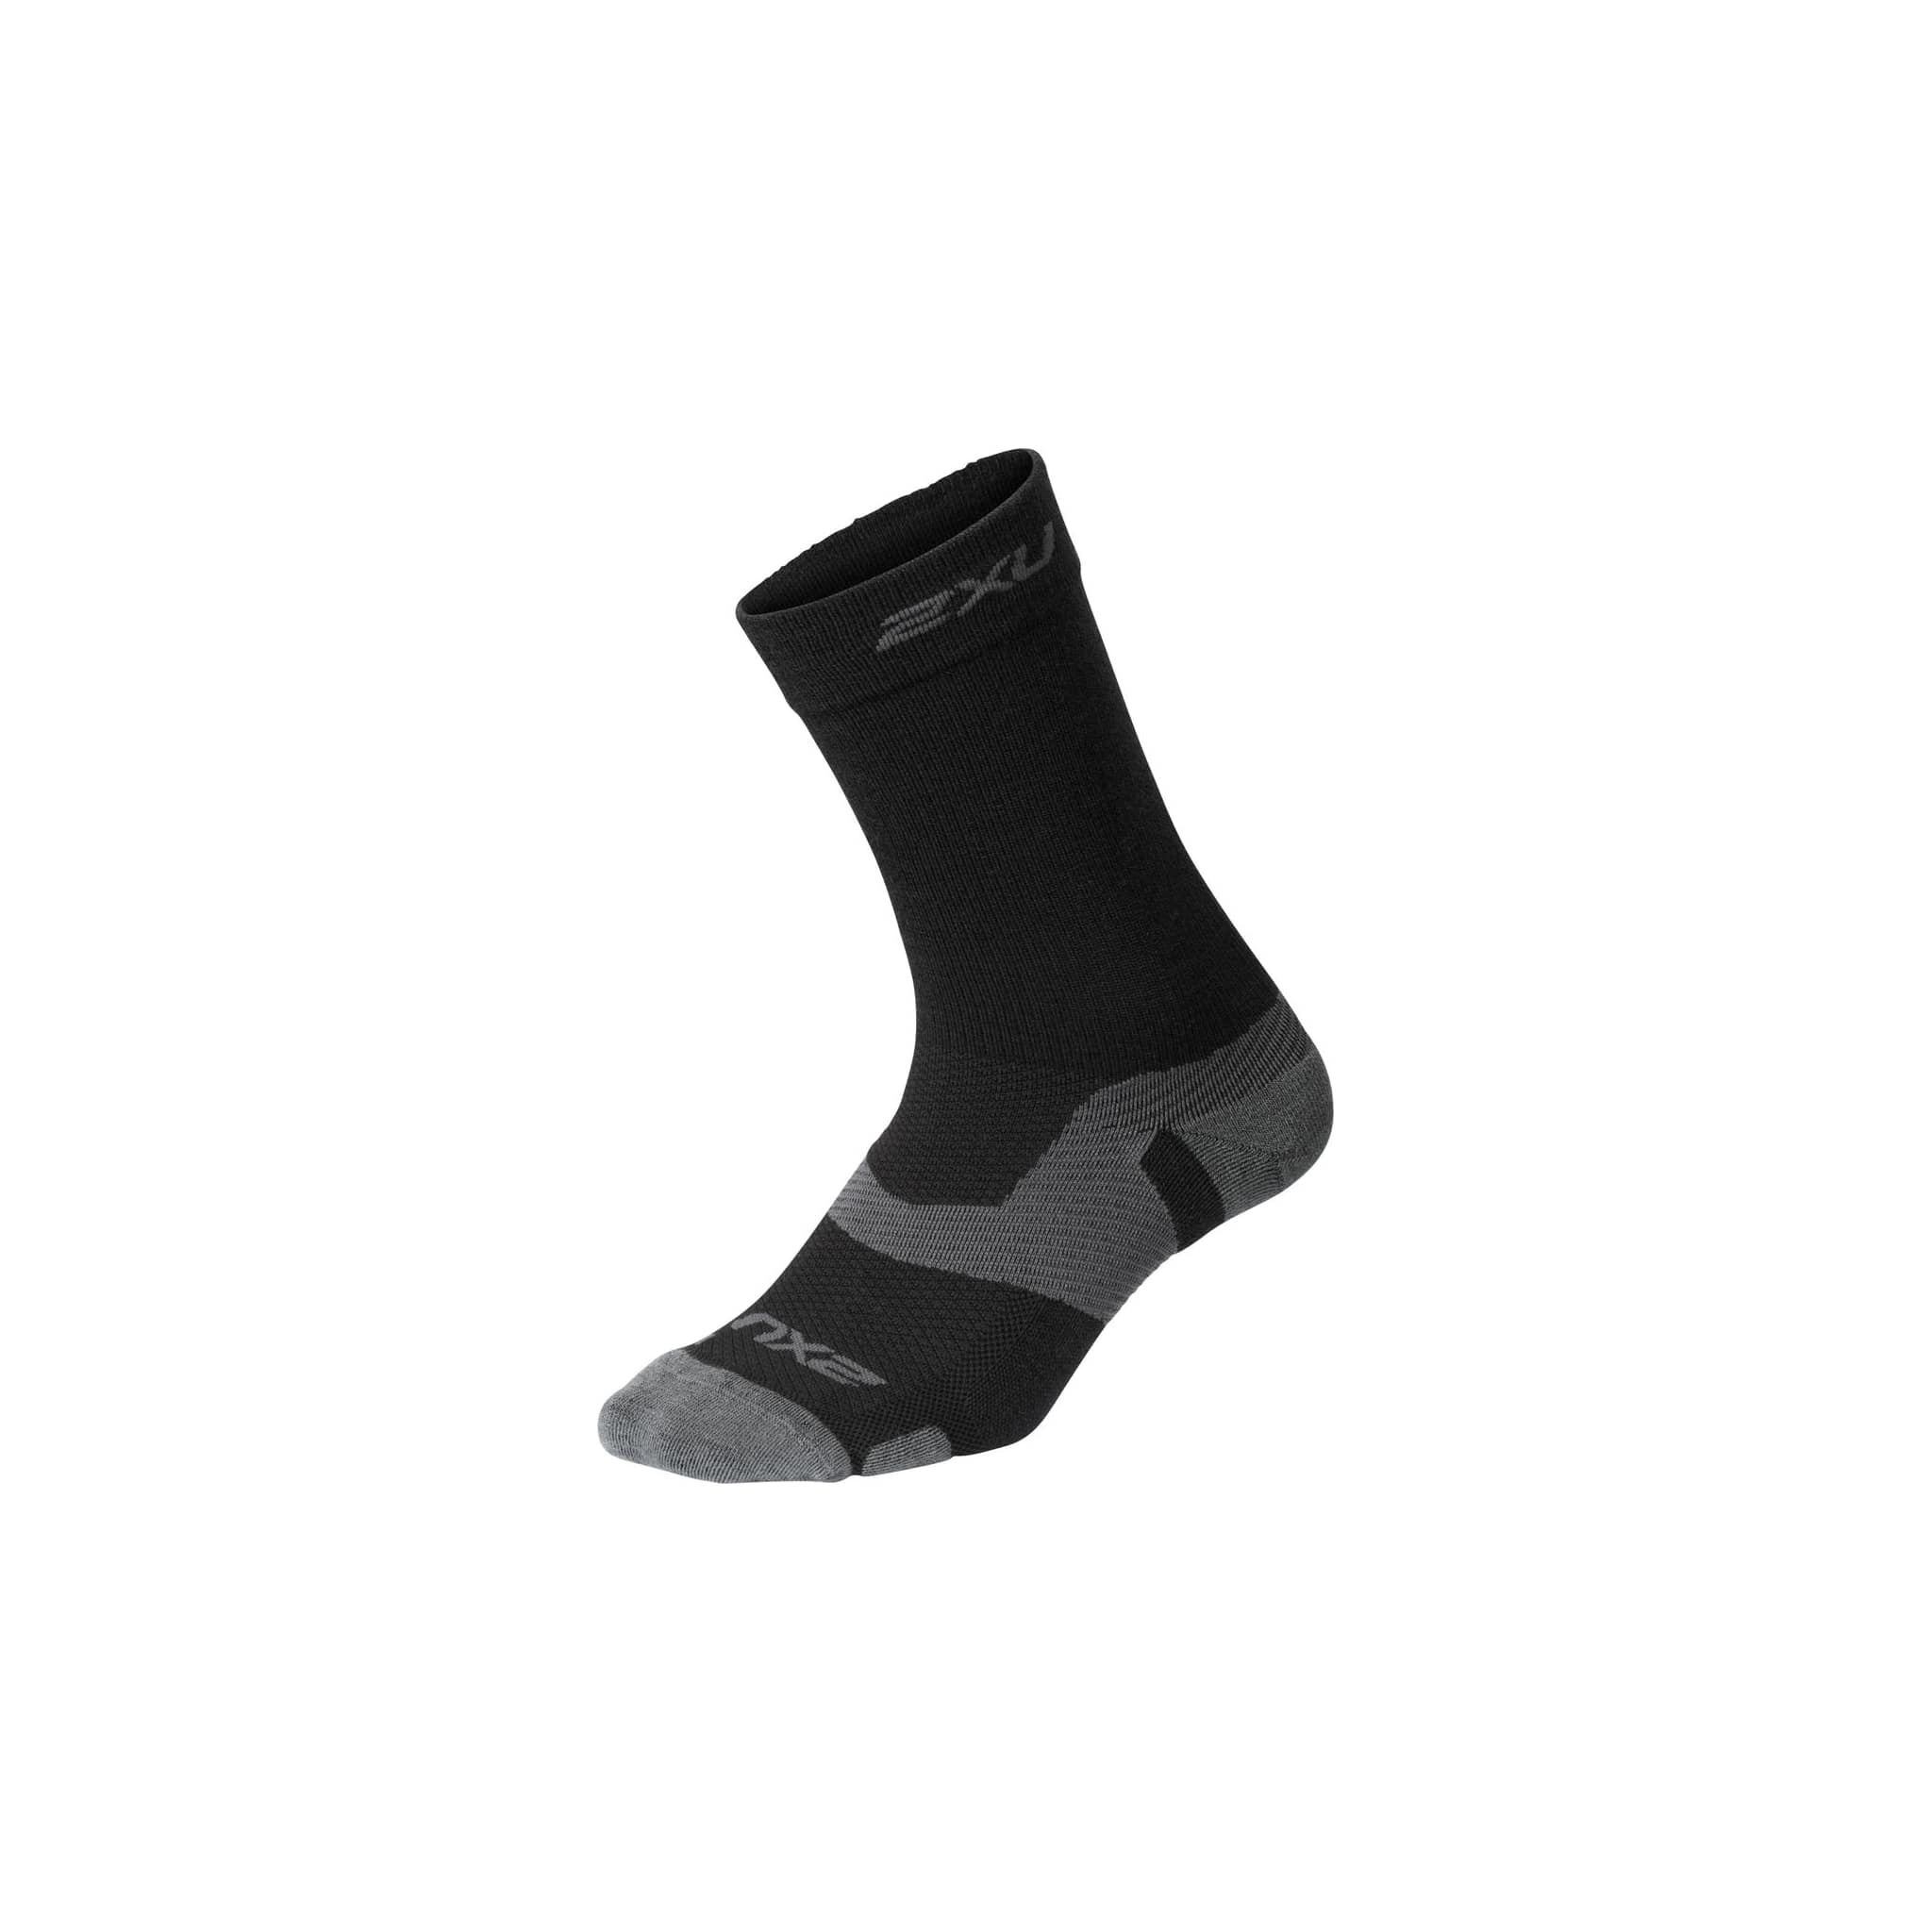 Vectr Merino Light Cushion Crew Sock